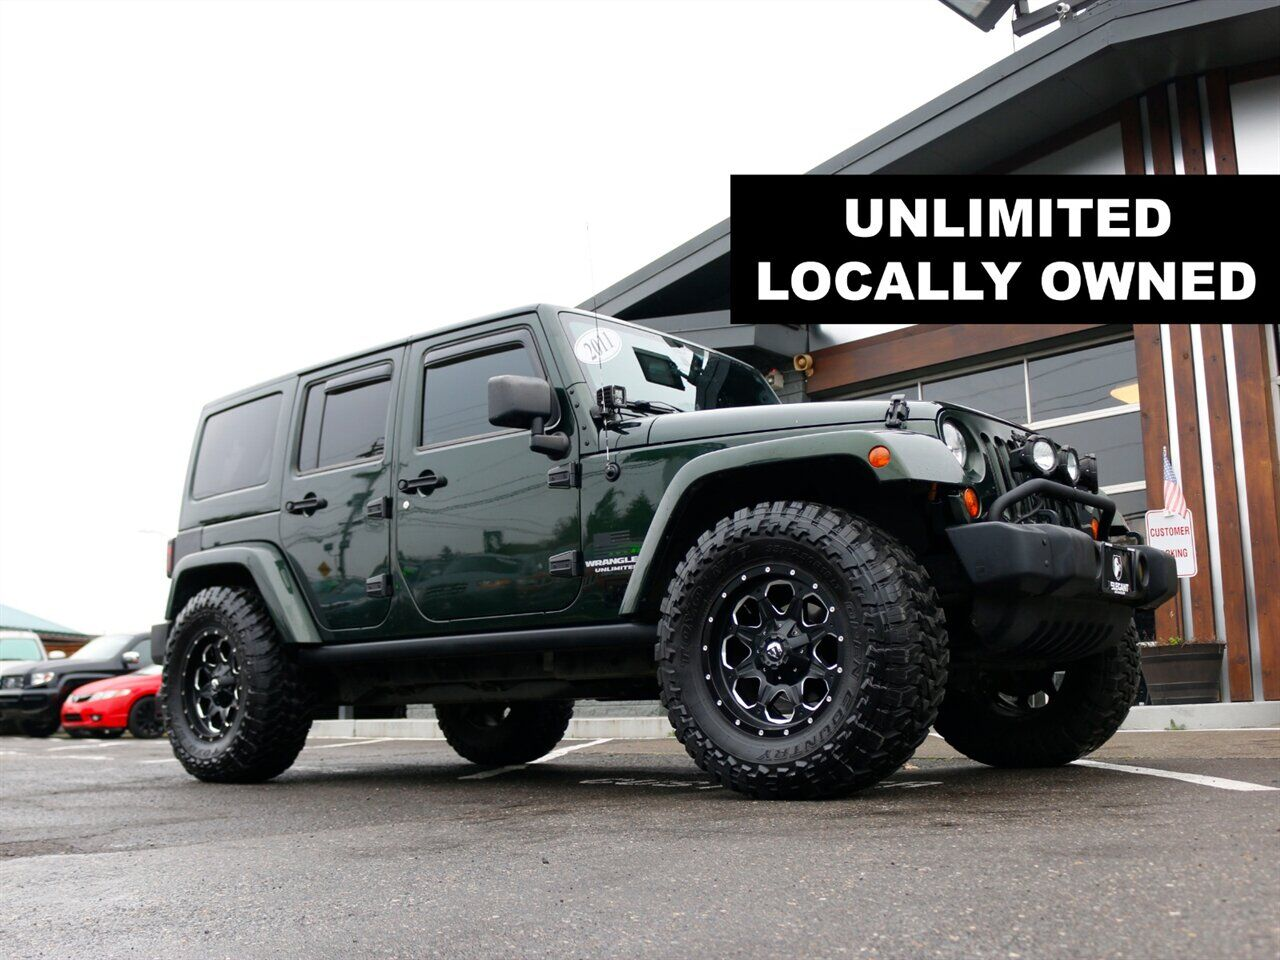 2011 Jeep Wrangler Unlimited Sahara / 4x4 / automatic / pw windows Beaverton OR